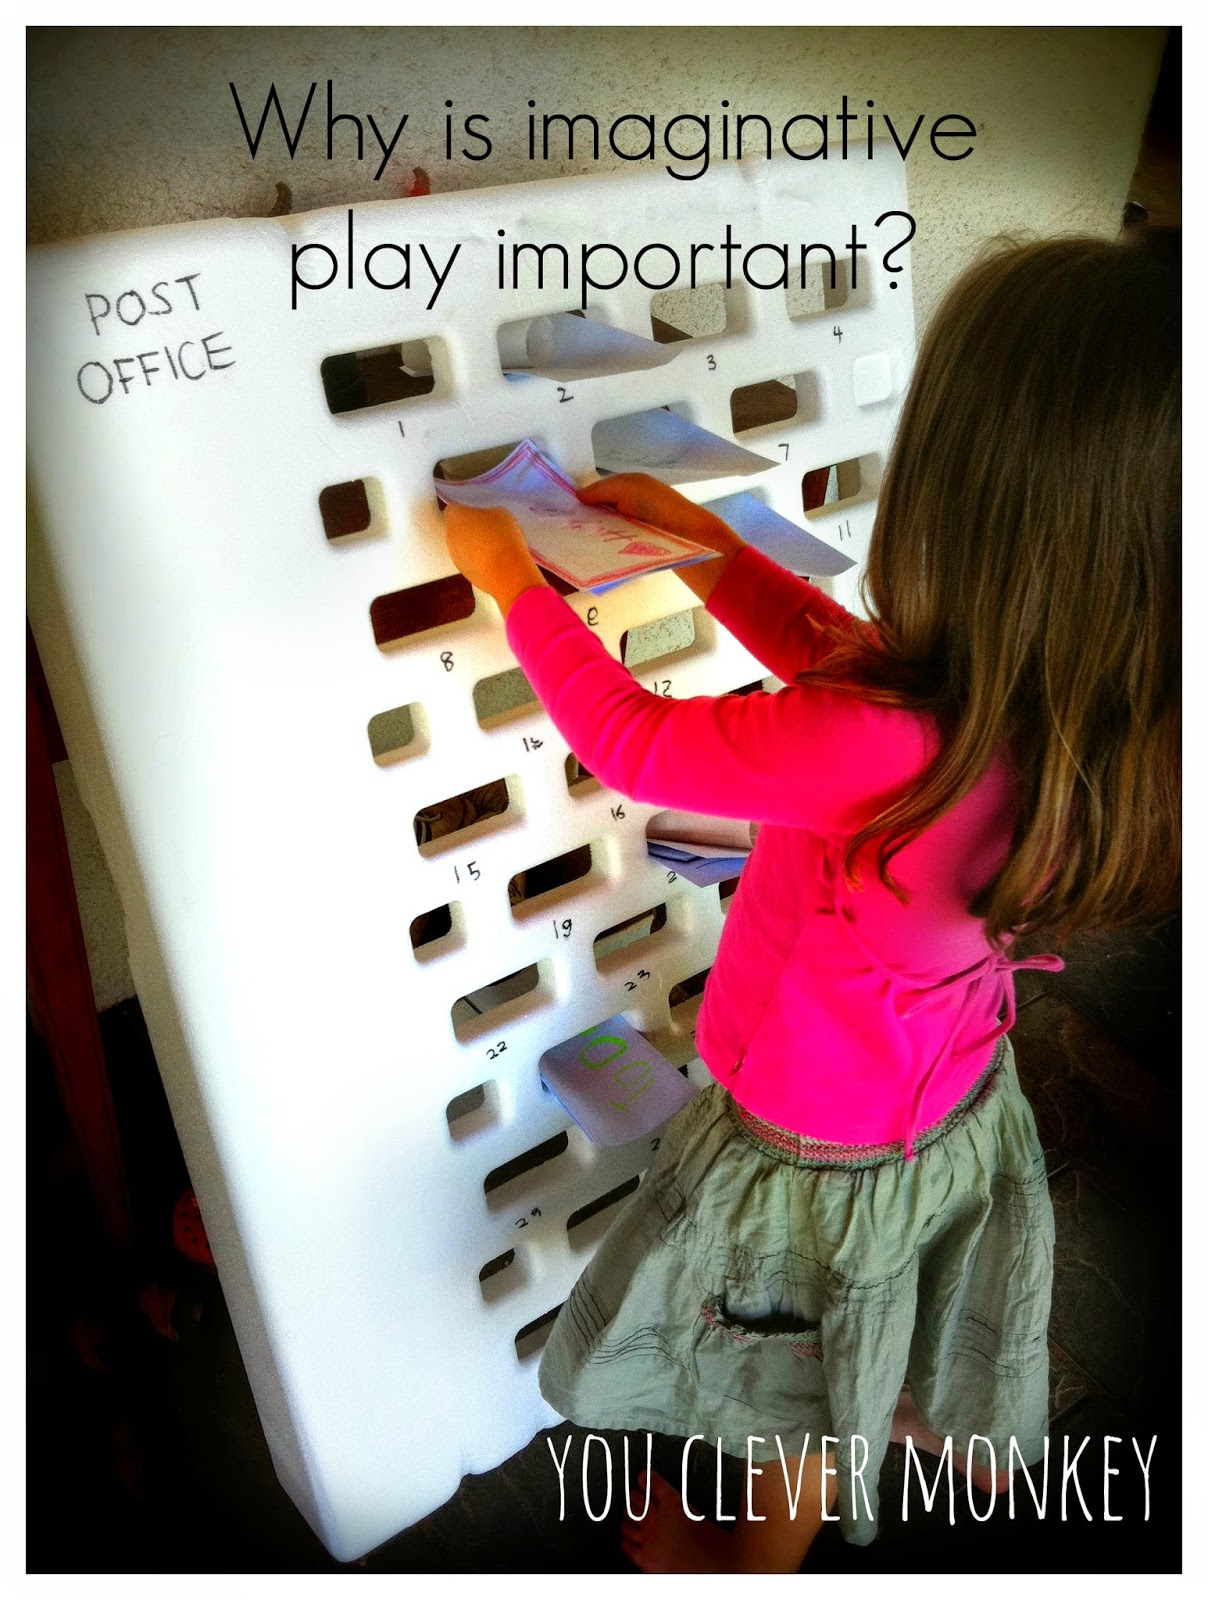 Why is imaginative play important in early childhood? Exploring why pretend play is important in childhood using research based evidence | you clever monkey